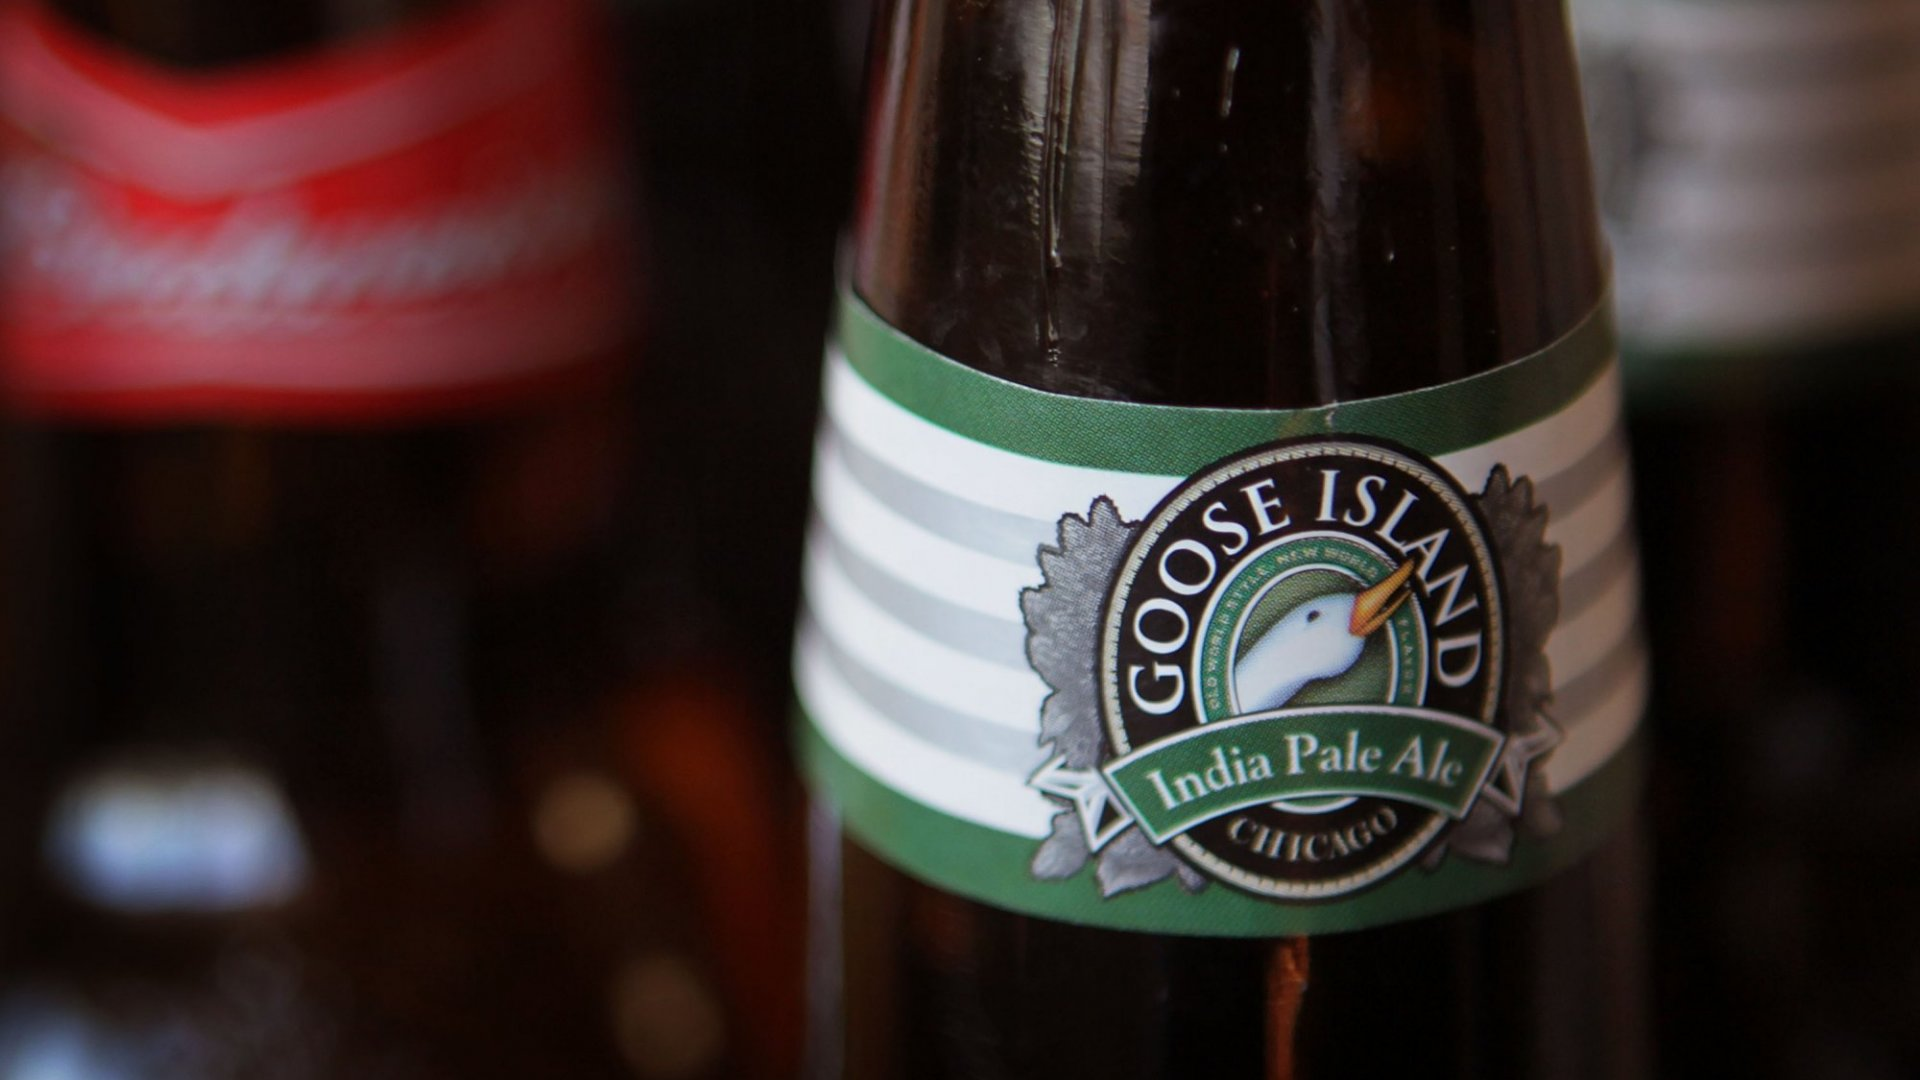 How Goose Island Beer Company Succeeded in the Competitive Craft Beer Industry